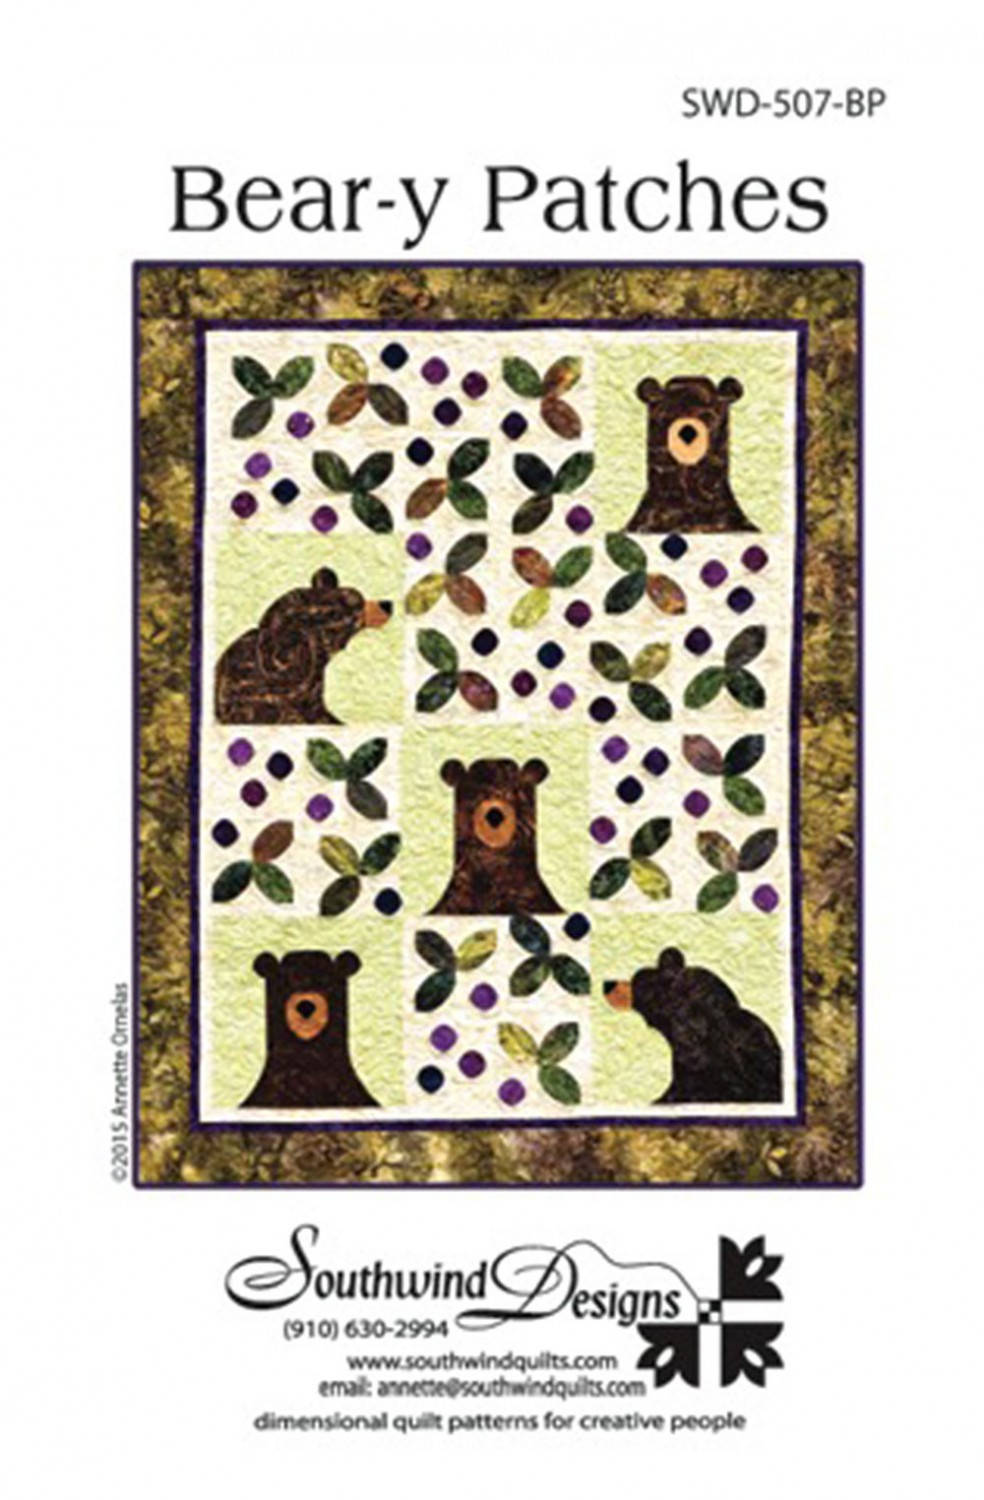 Beary Patches Quilt Pattern